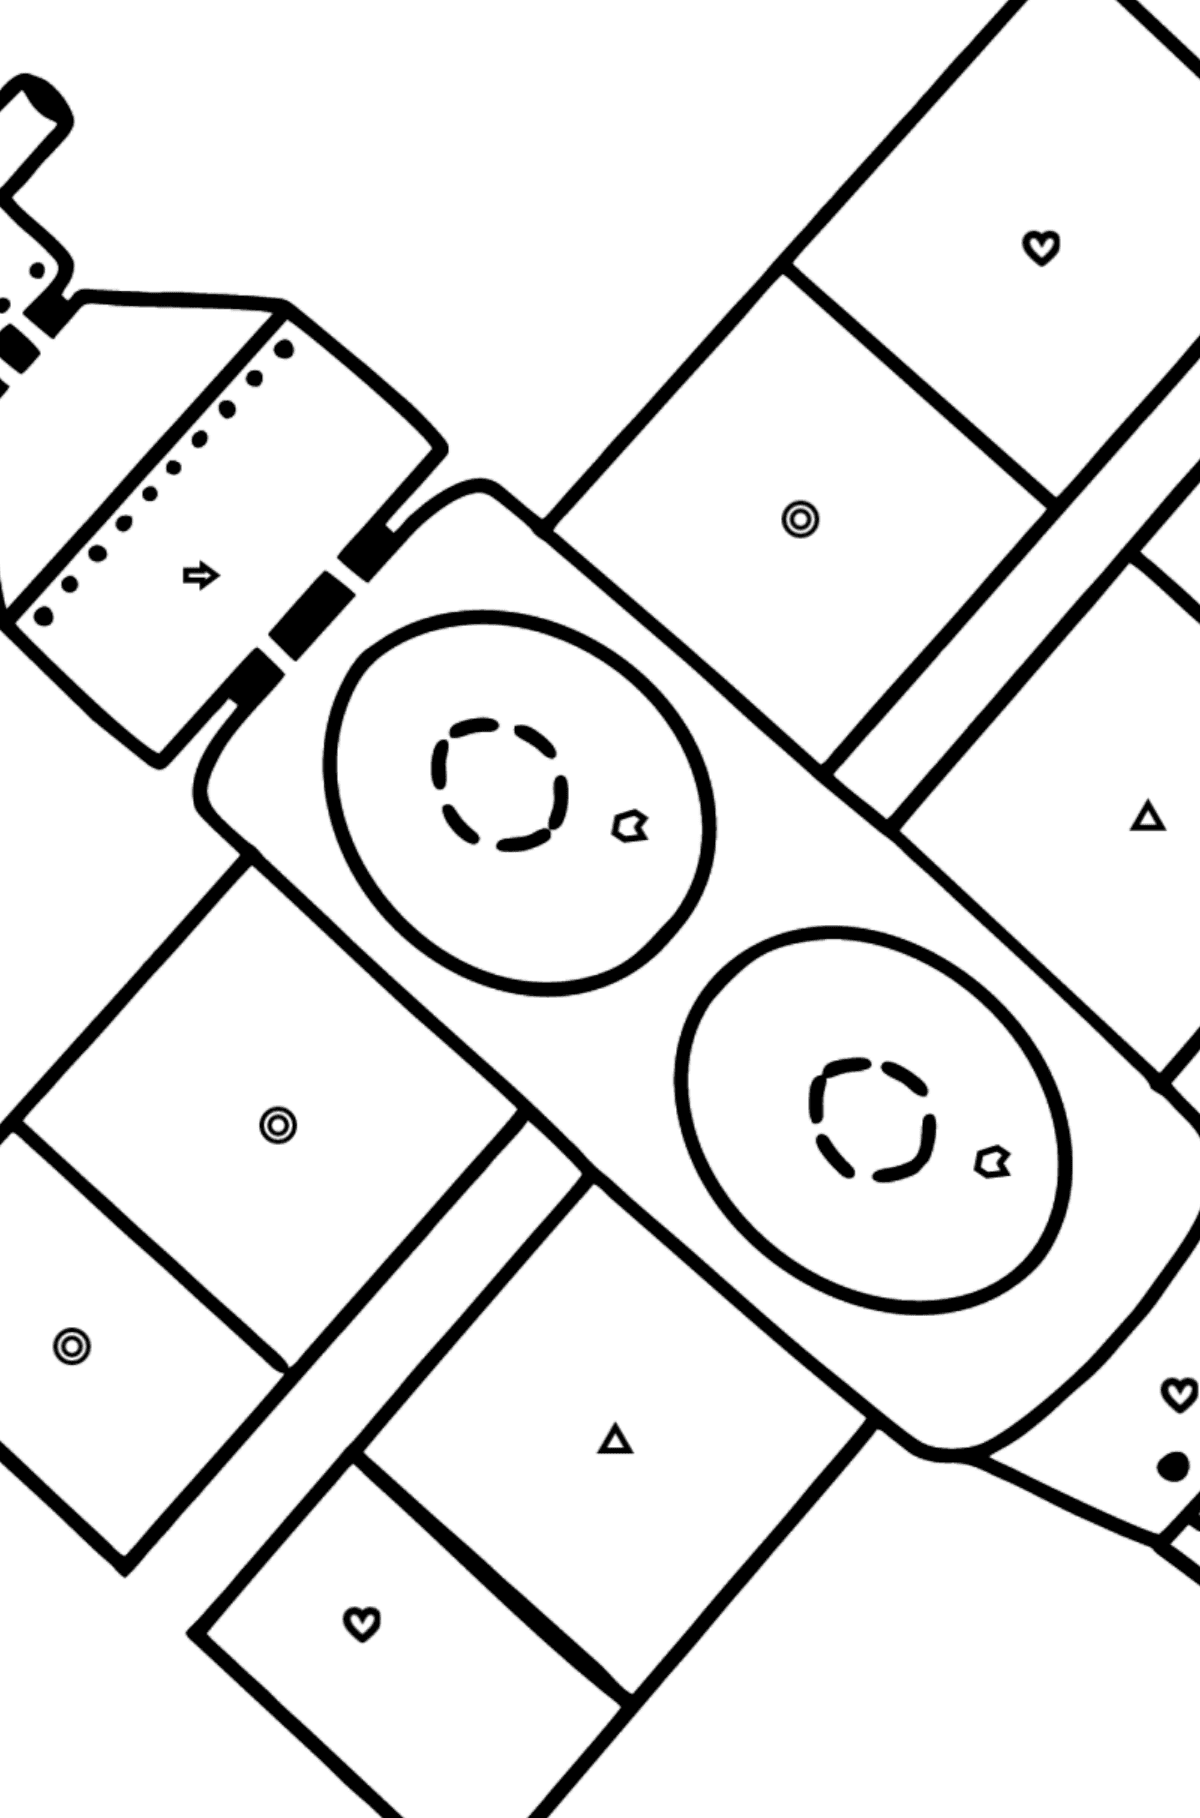 Spaceship coloring page - Coloring by Geometric Shapes for Kids